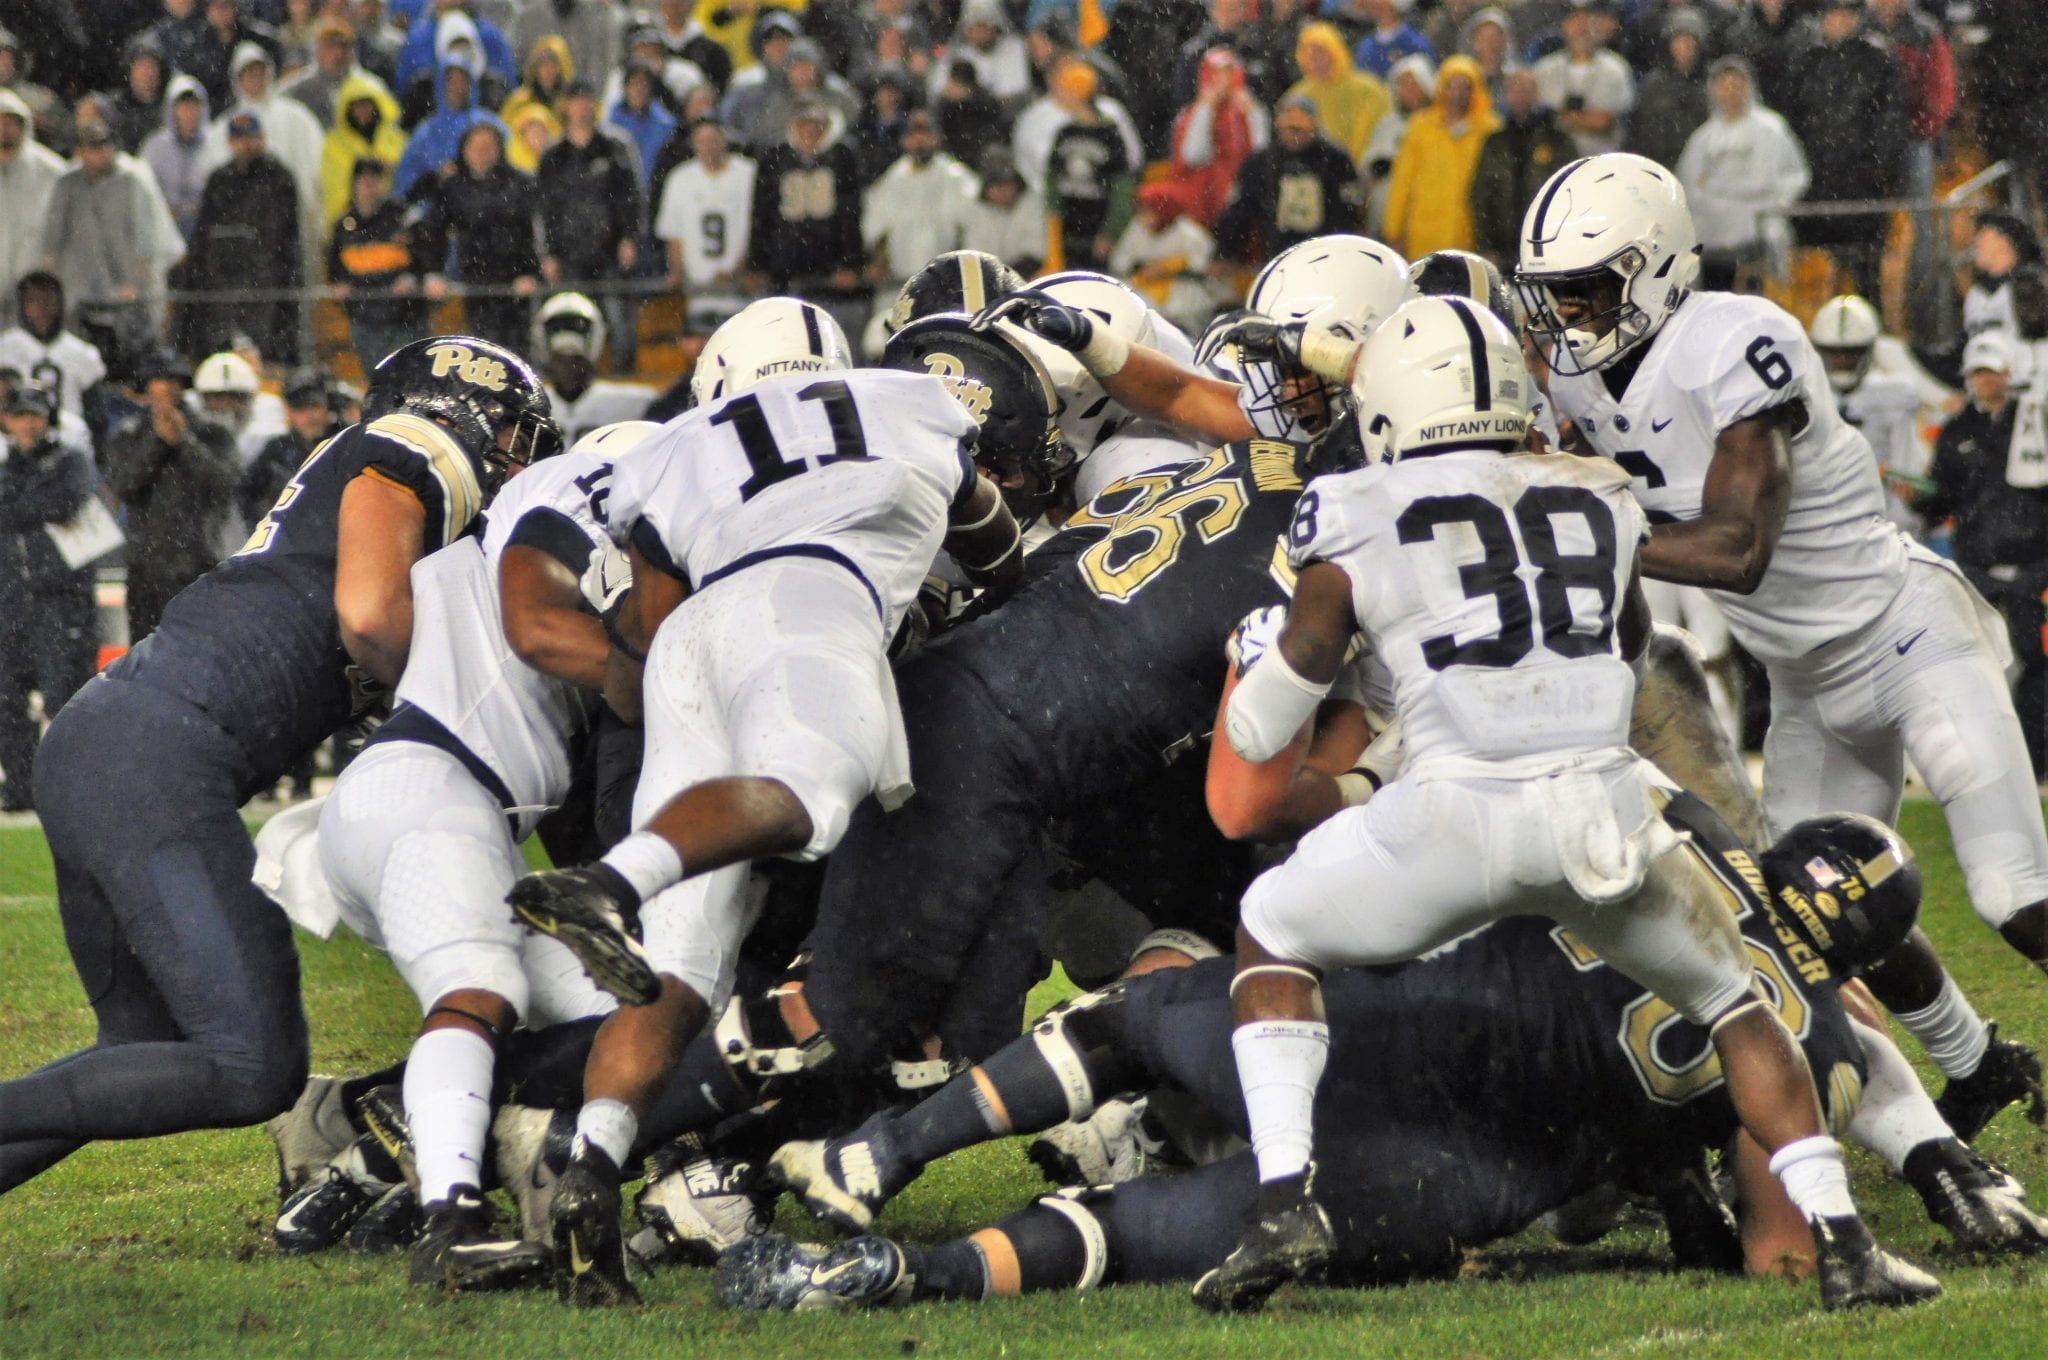 Penn State Football Expert Expects Pitt To Be 7 5 Point Underdog At Penn State